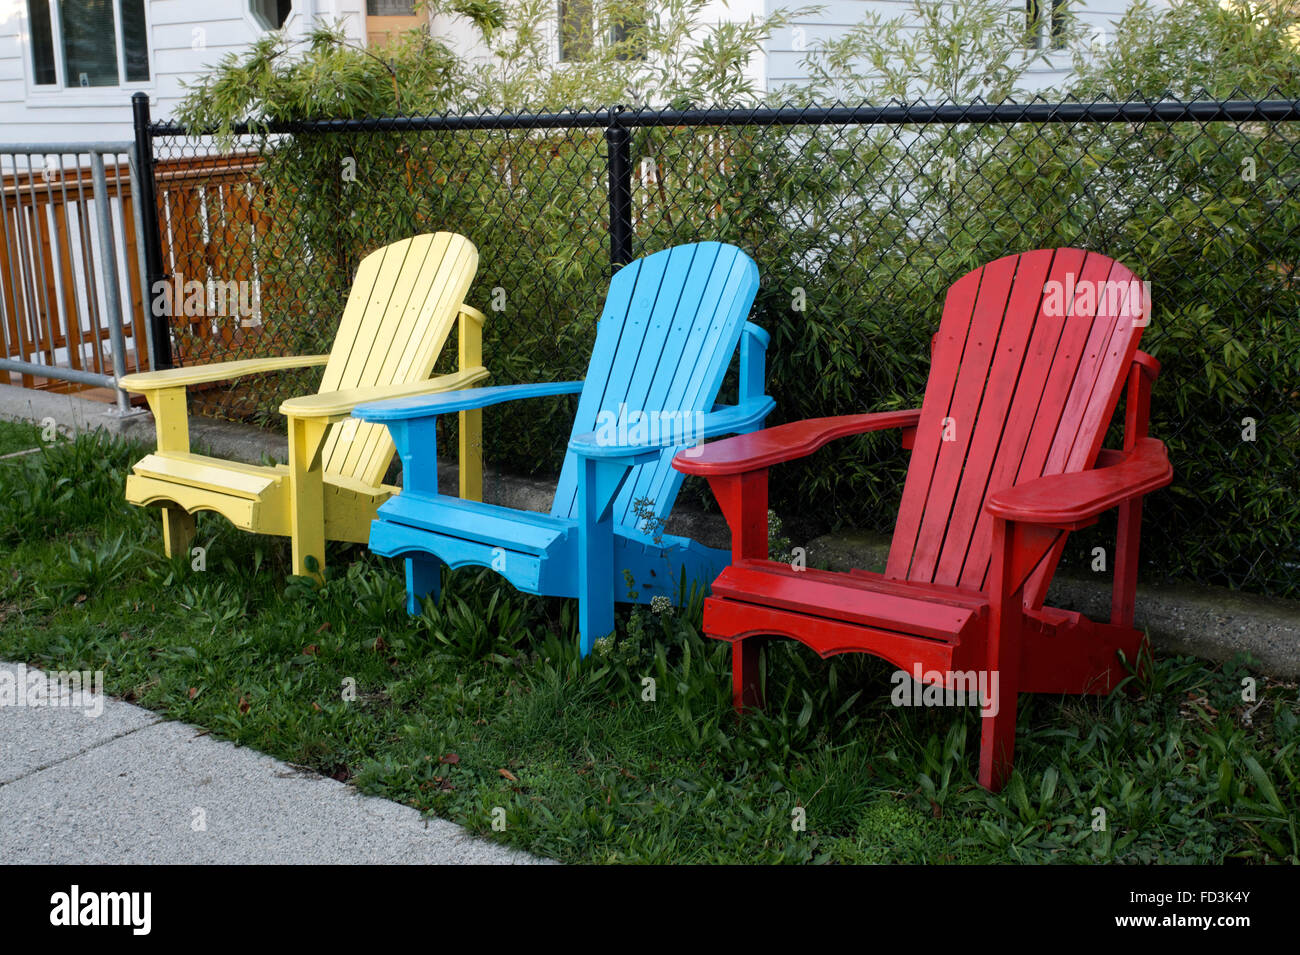 Colorful adirondack chairs - Stock Photo Three Wooden Adirondack Chairs Painted In The Primary Colors Red Yellow And Red